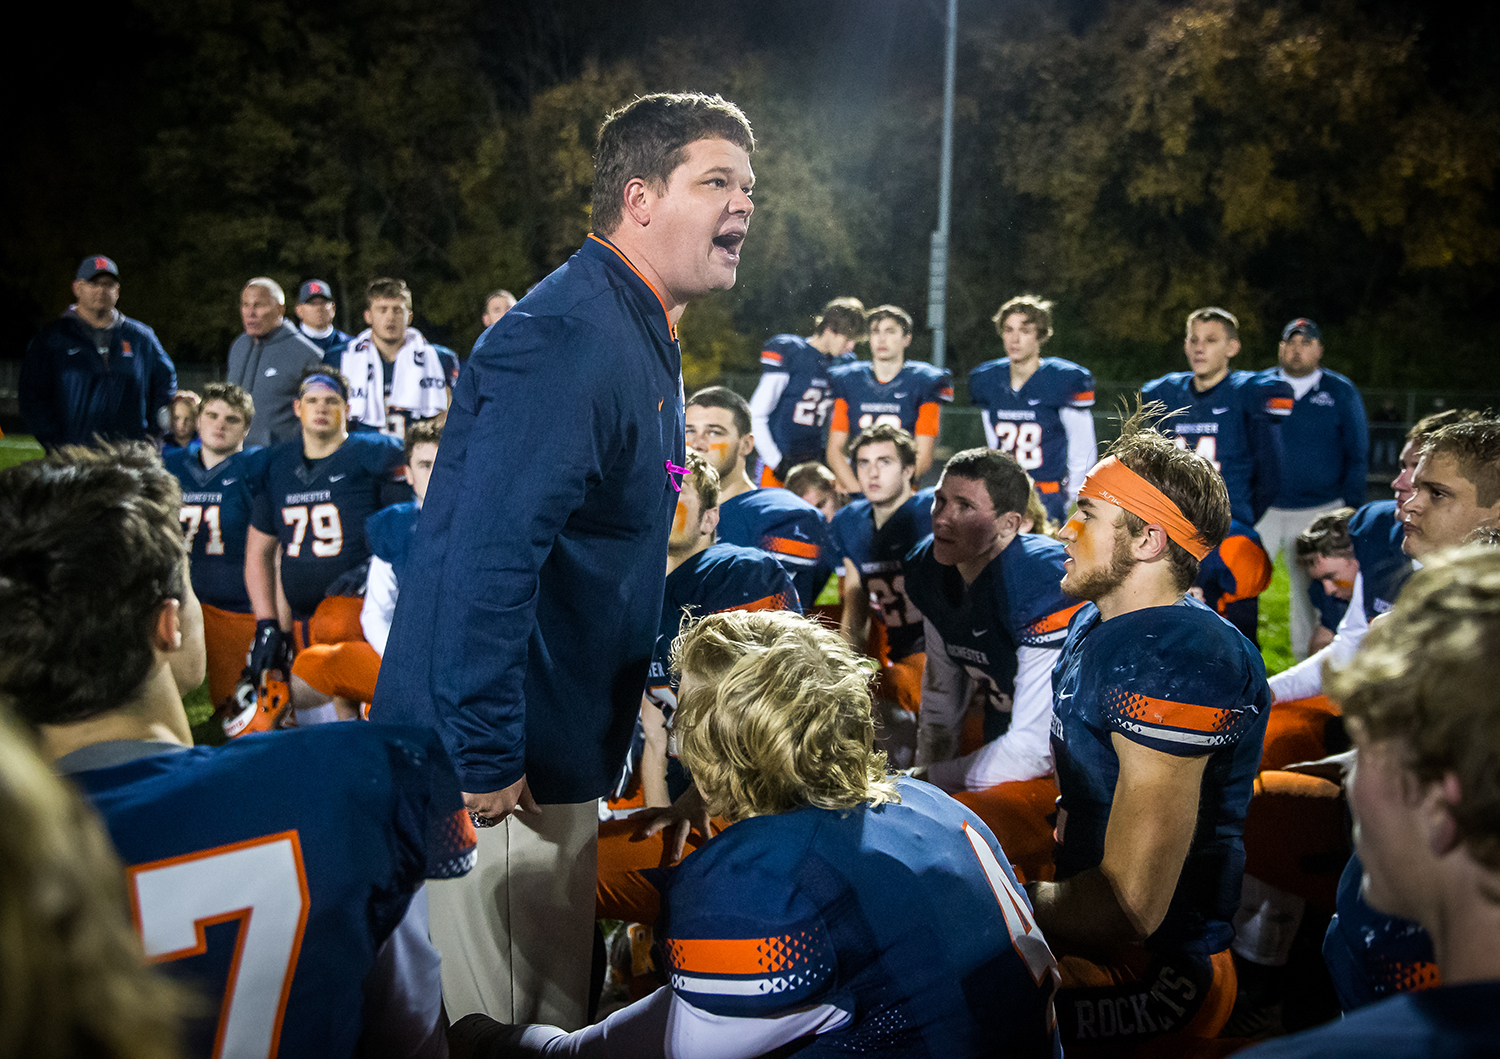 Rochester football head coach Derek Leonard gets his team fired up after the defeated Pontiac in the second round of the Class 4A playoffs at Rochester High School, Saturday, Nov. 3, 2018, in Rochester, Ill. [Justin L. Fowler/The State Journal-Register]